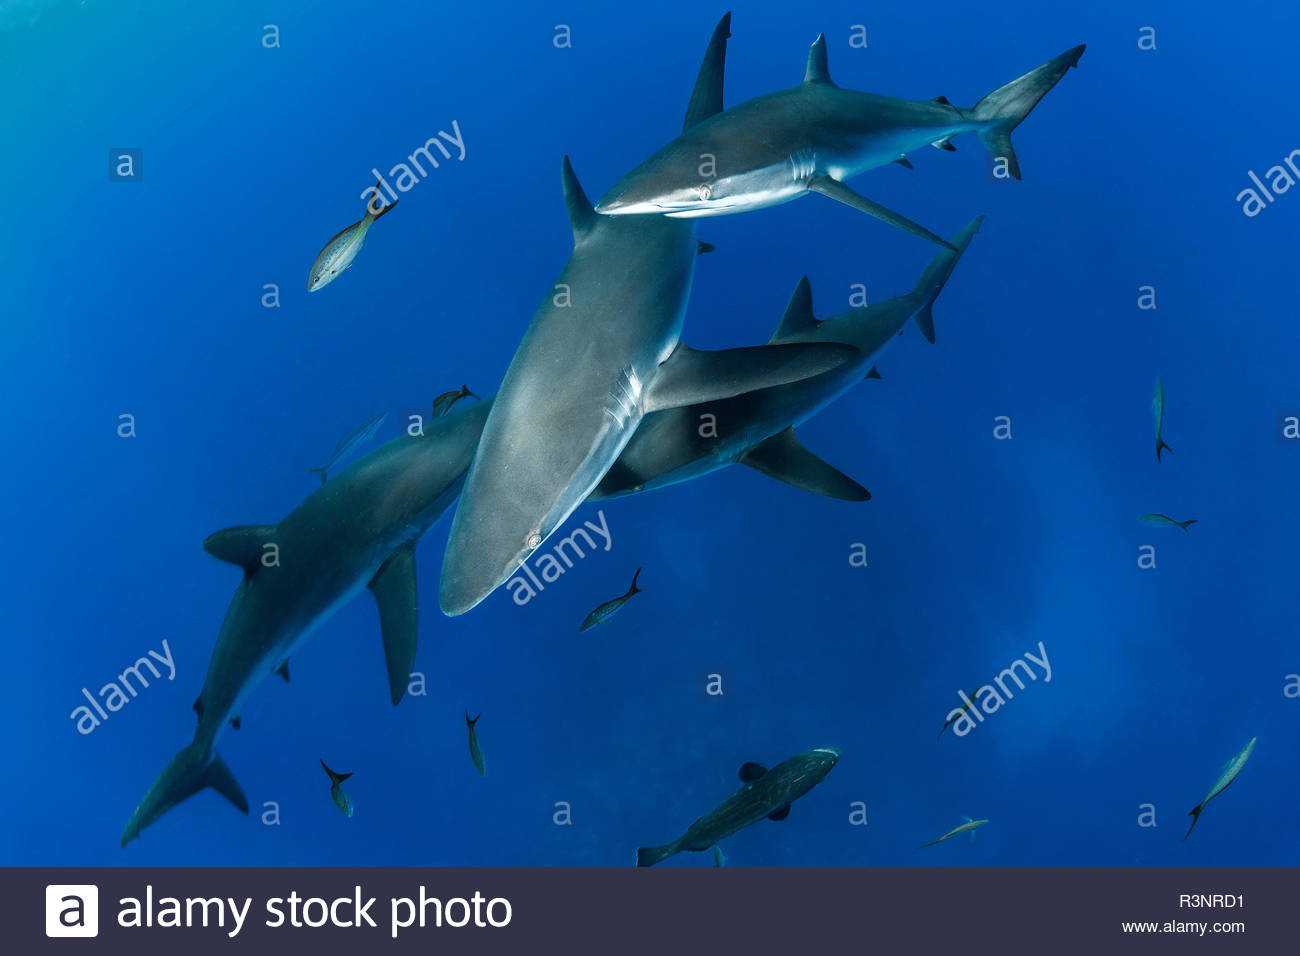 Group of Silky Sharks (Carcharhinus falciformis), Queen's Gardens National Park, Cuba - Stock Image